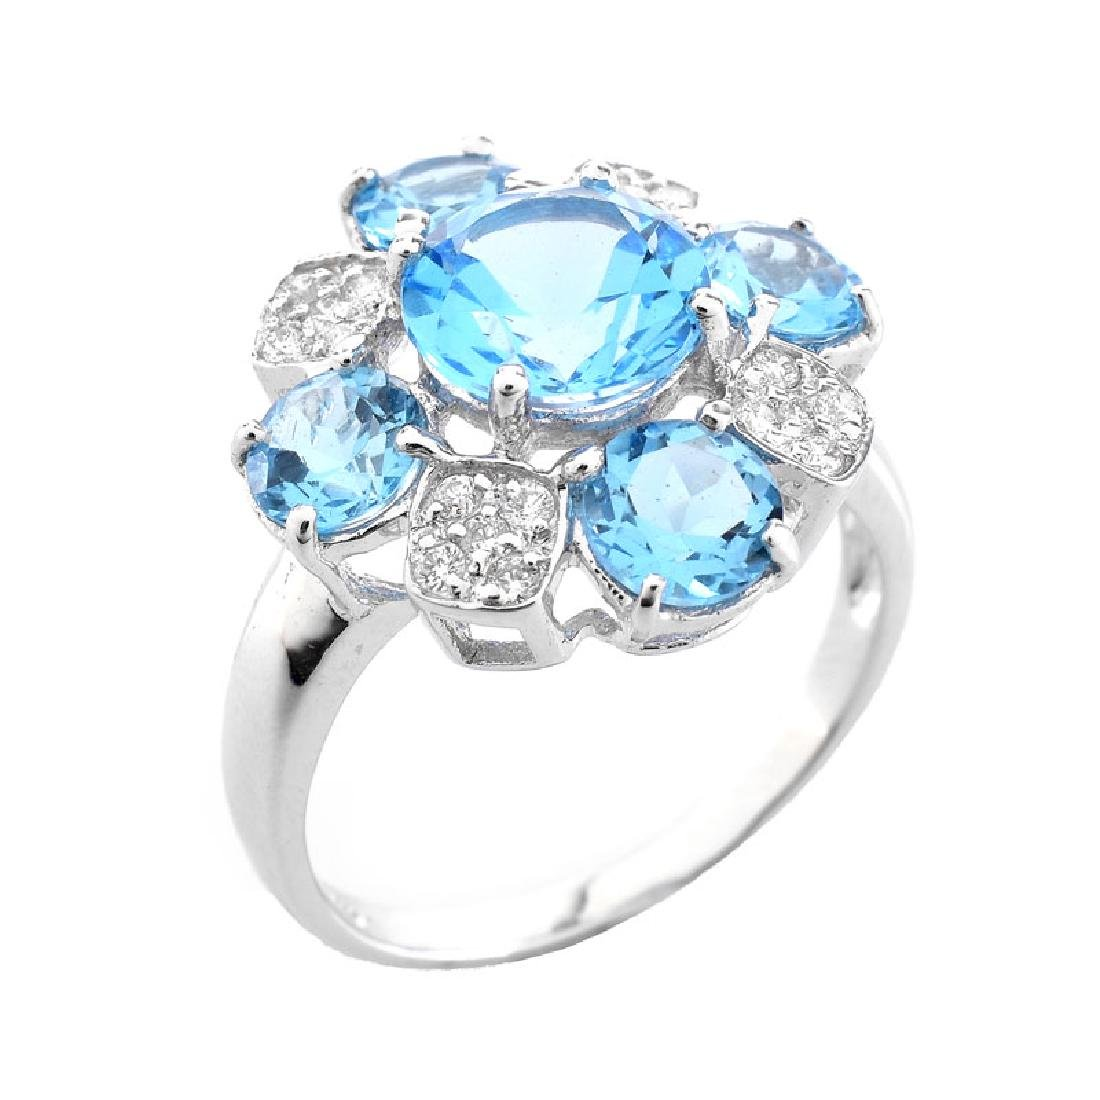 Approx. 4.86 Carat Round Cut London Topaz, Diamond and